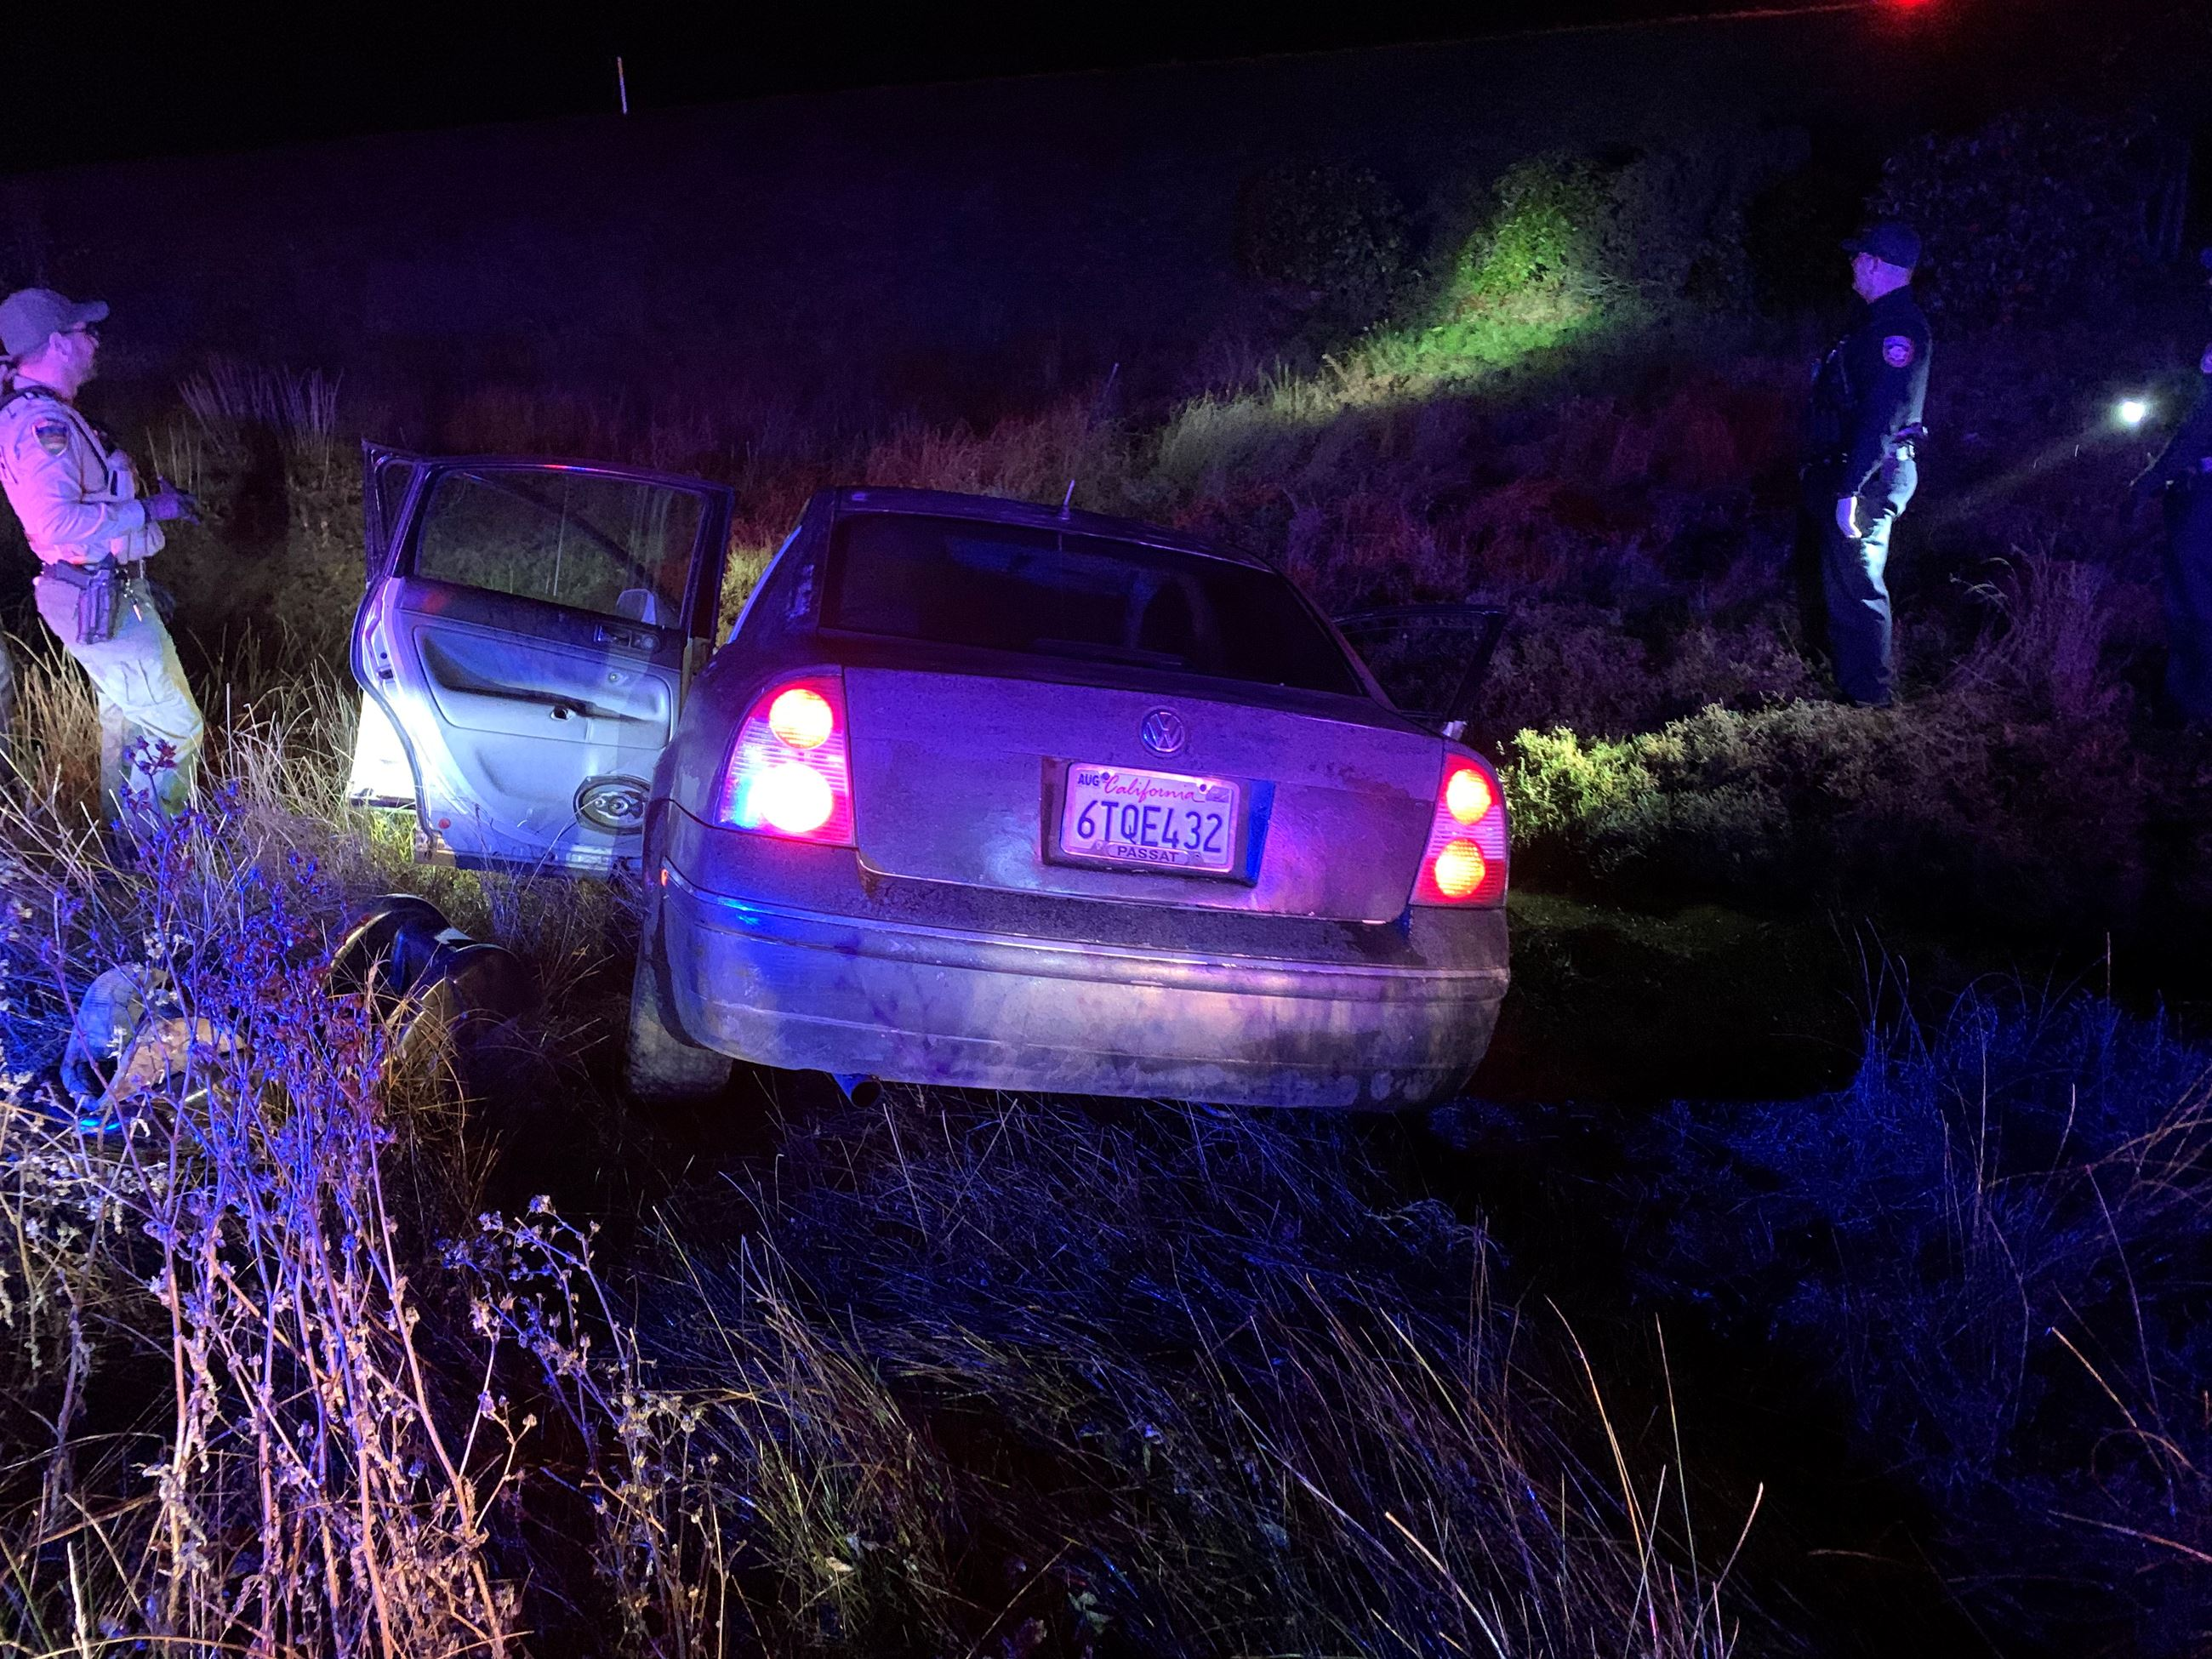 Deputies stand nearby a vehicle that has crashed into the marsh